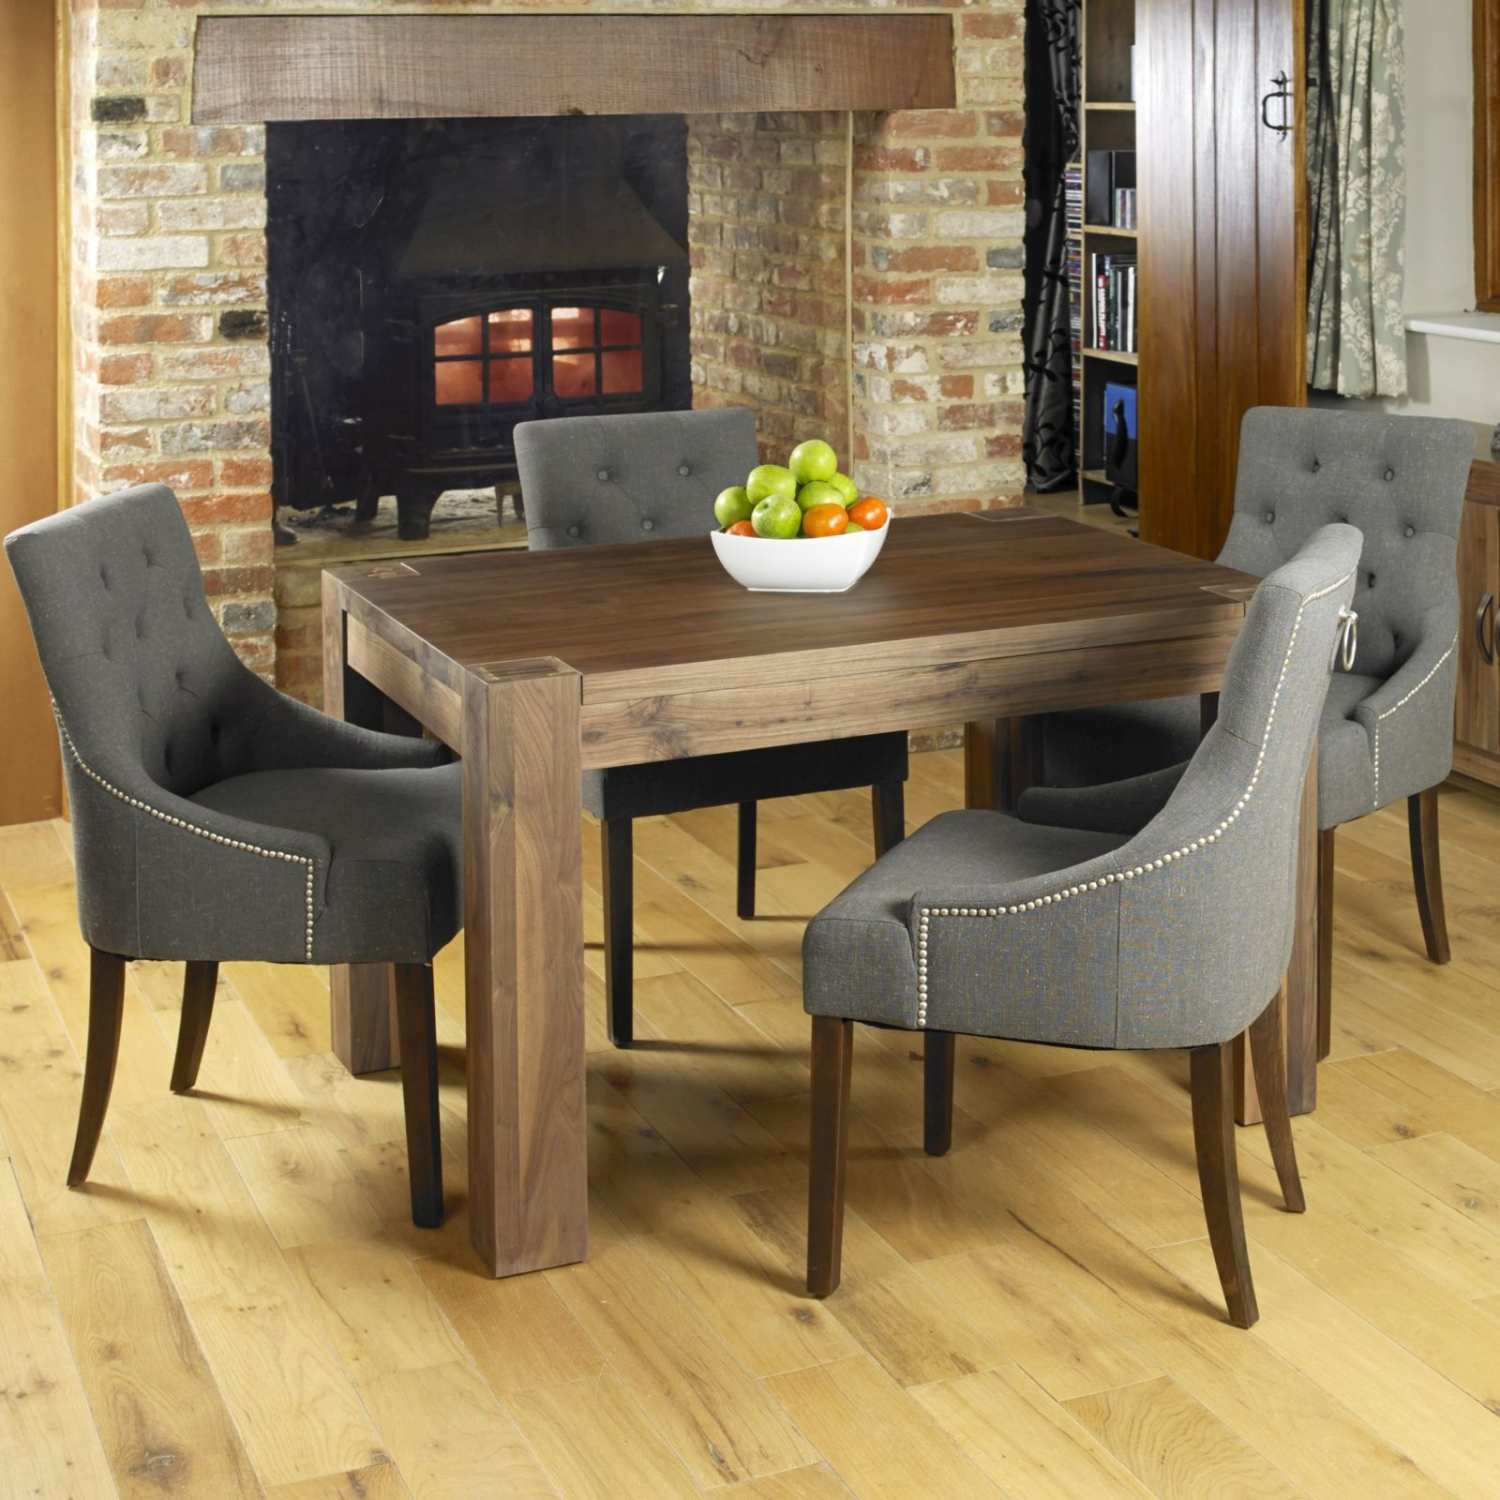 Linea Walnut Dark Wood Modern Furniture Dining Table And Four Chairs Set EBay